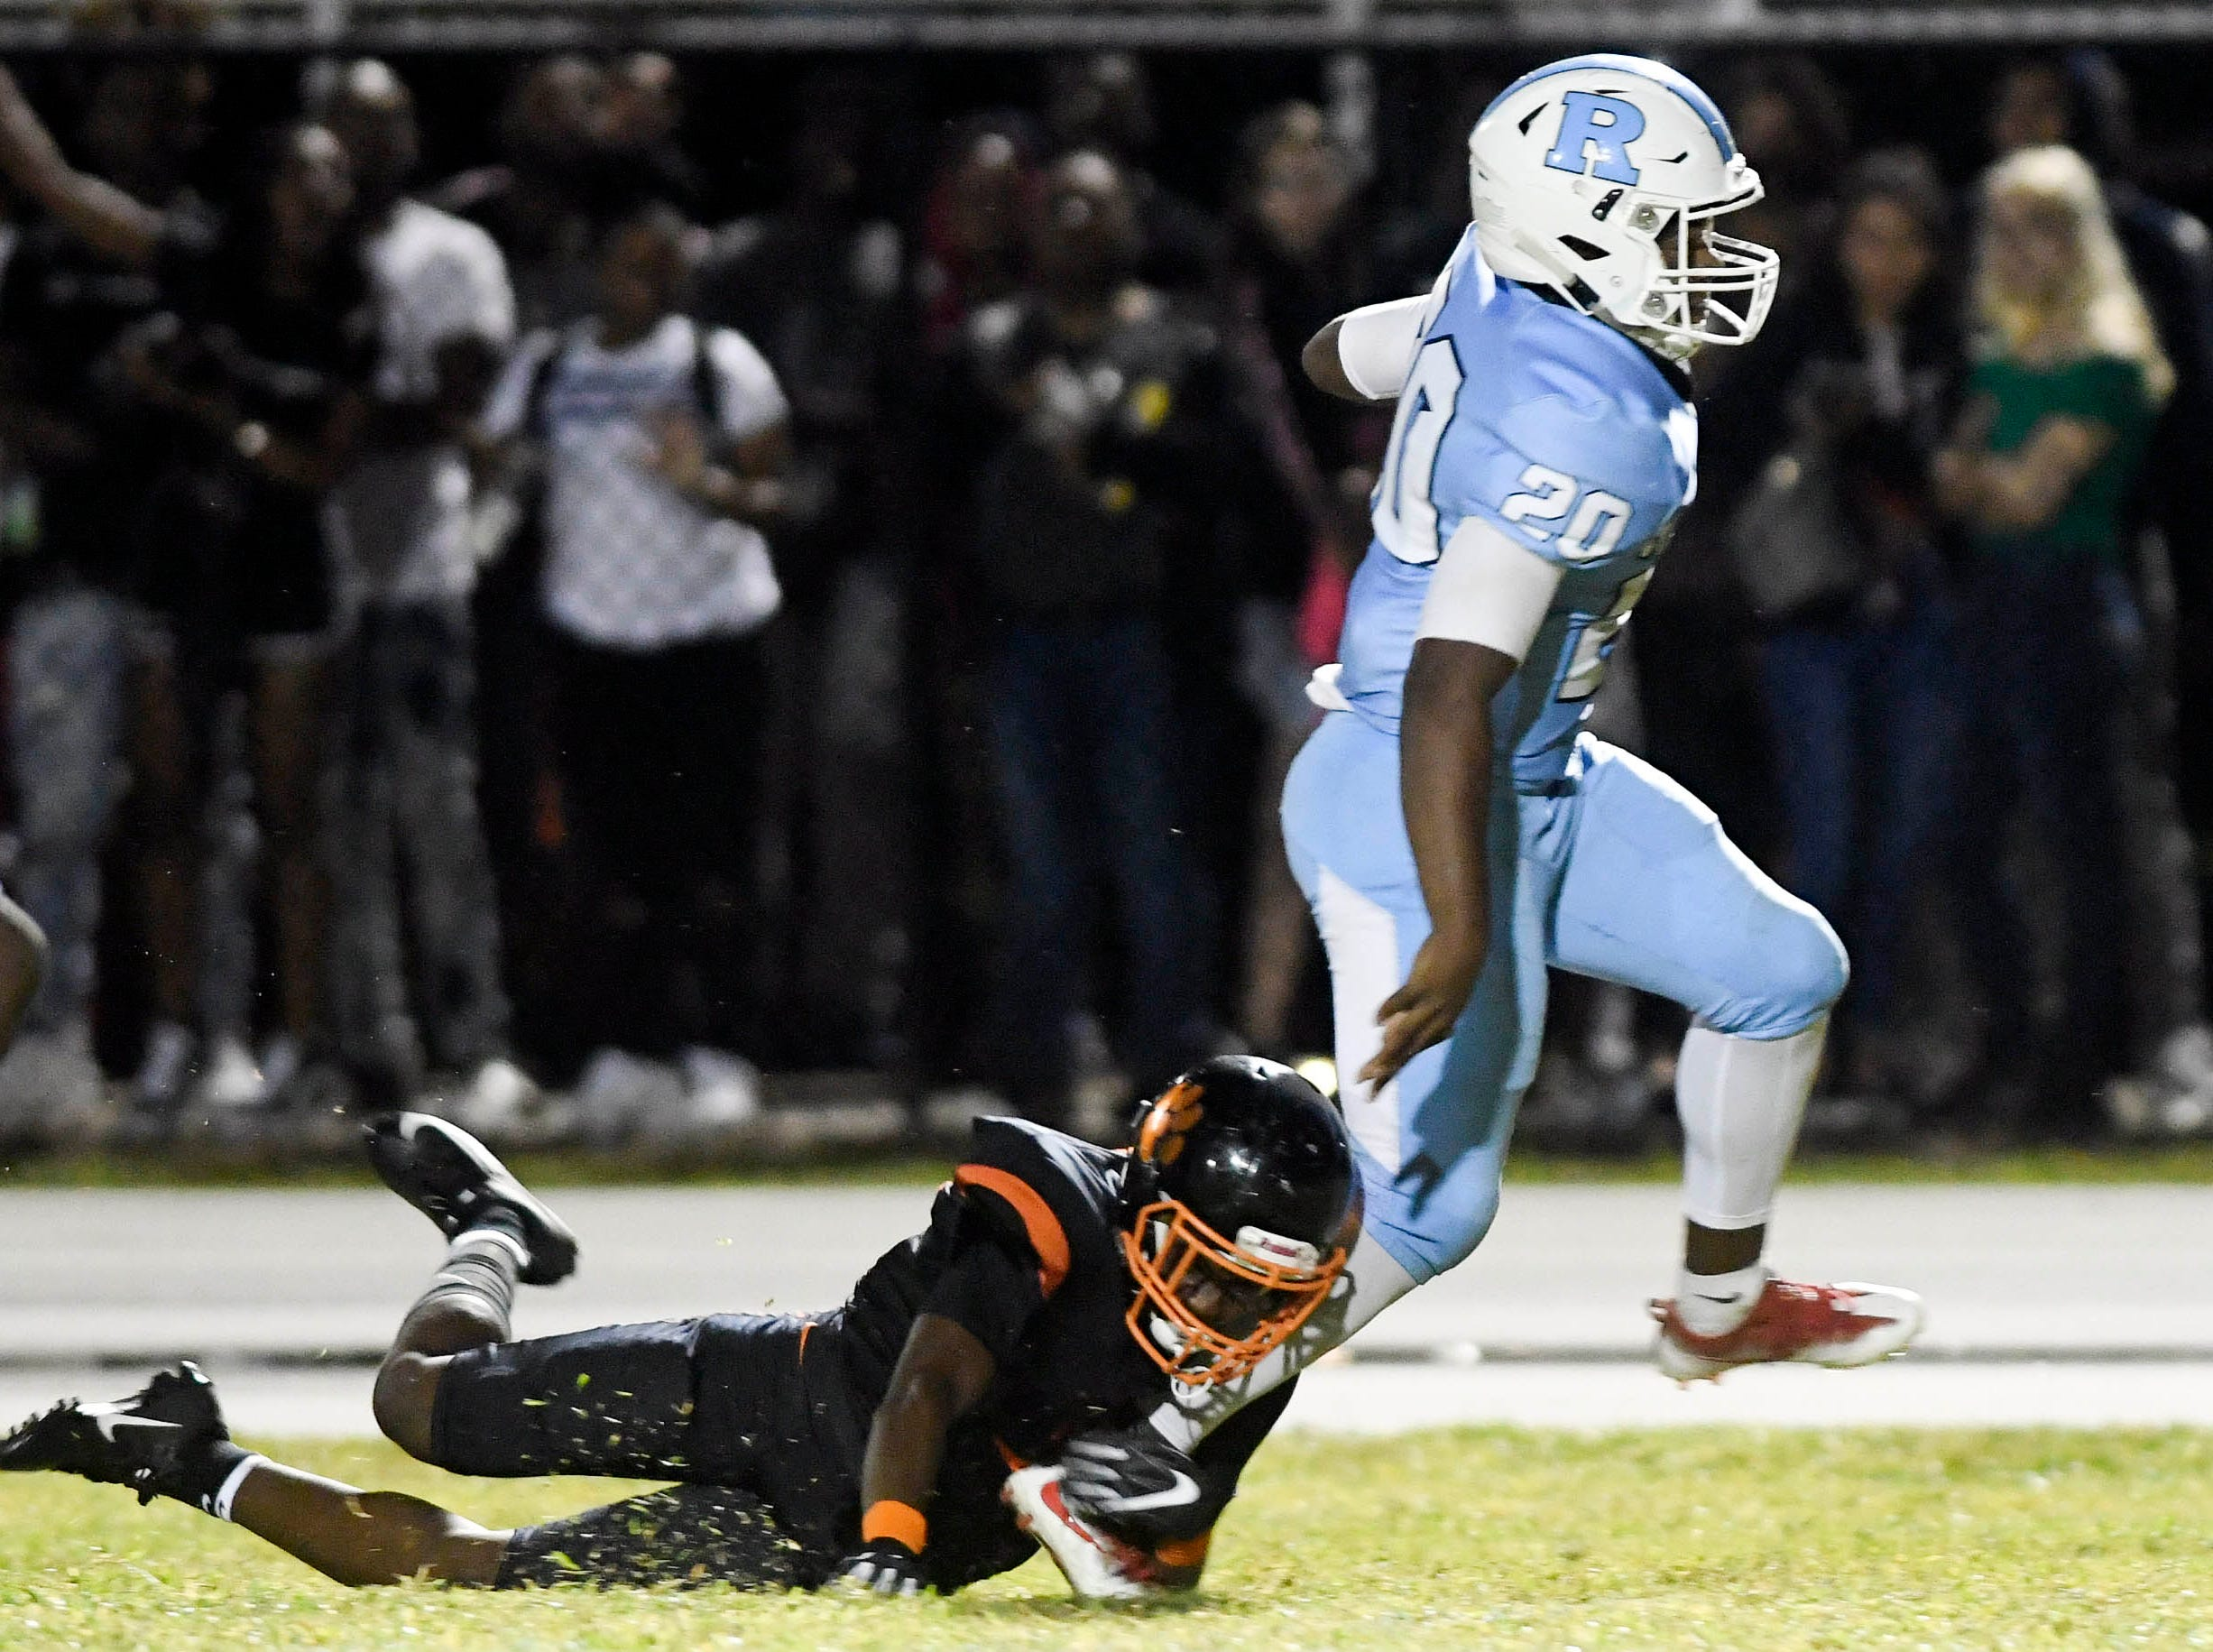 Avery Smith of Rockledge (20) gets around OJ Ross of Cocoa and returns a Cocoa interception for a touchdown during Friday's game.